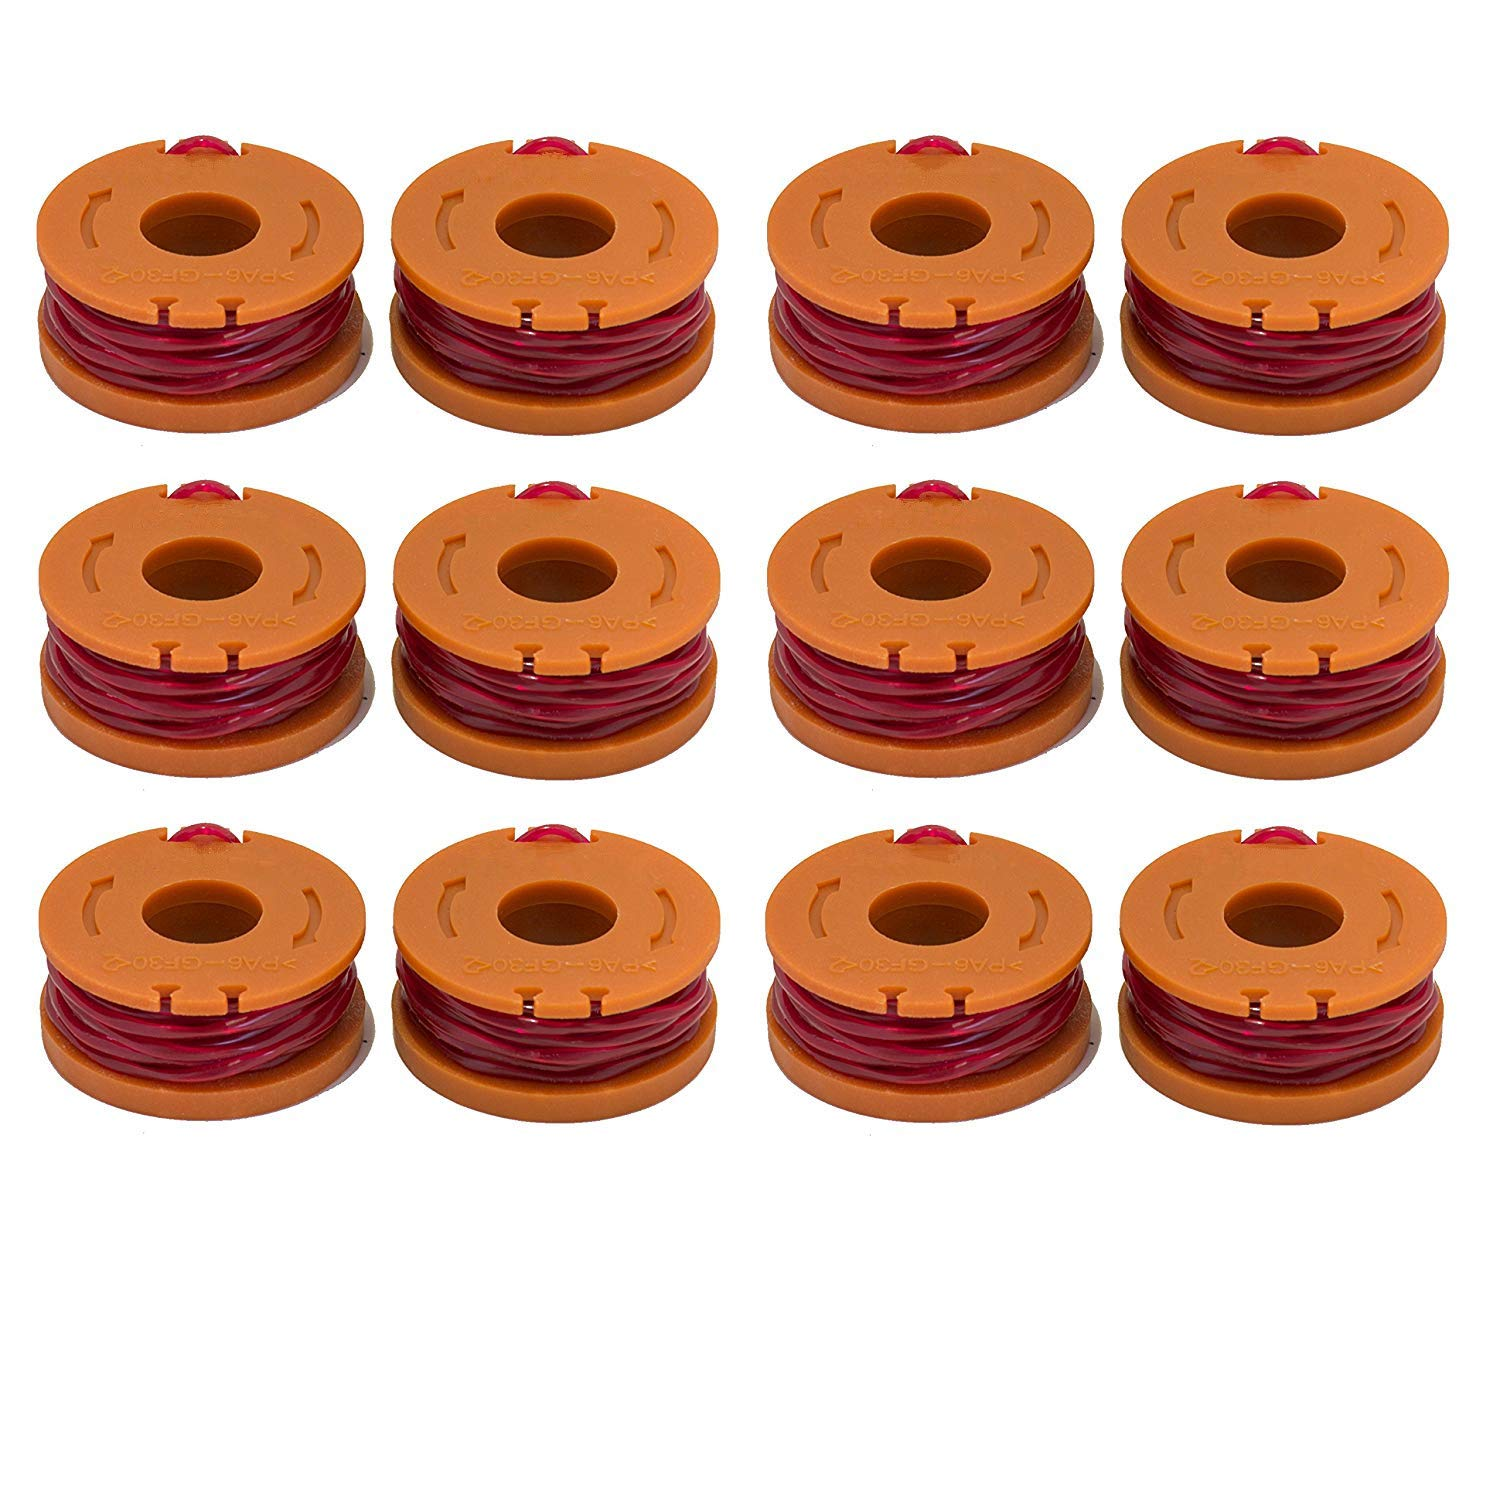 LBK 12-Pack Replacement 10-Foot Grass Trimmer/Edger Spool Line, Compatible Model Worx WA0010